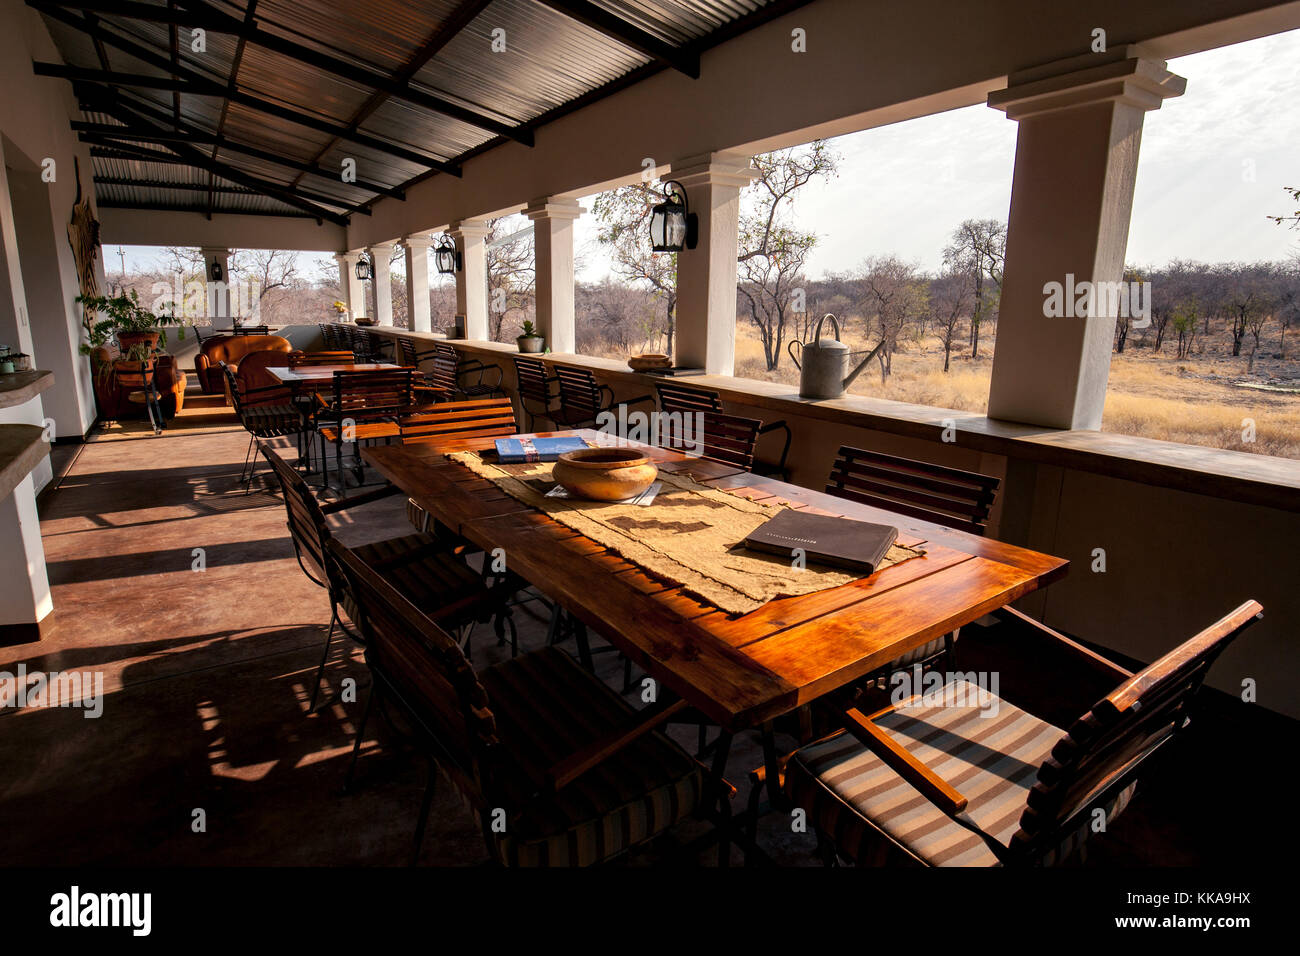 Restaurant area at Tamboti Luxury Campsite, Onguma Game Reserve, Namibia, Africa - Stock Image